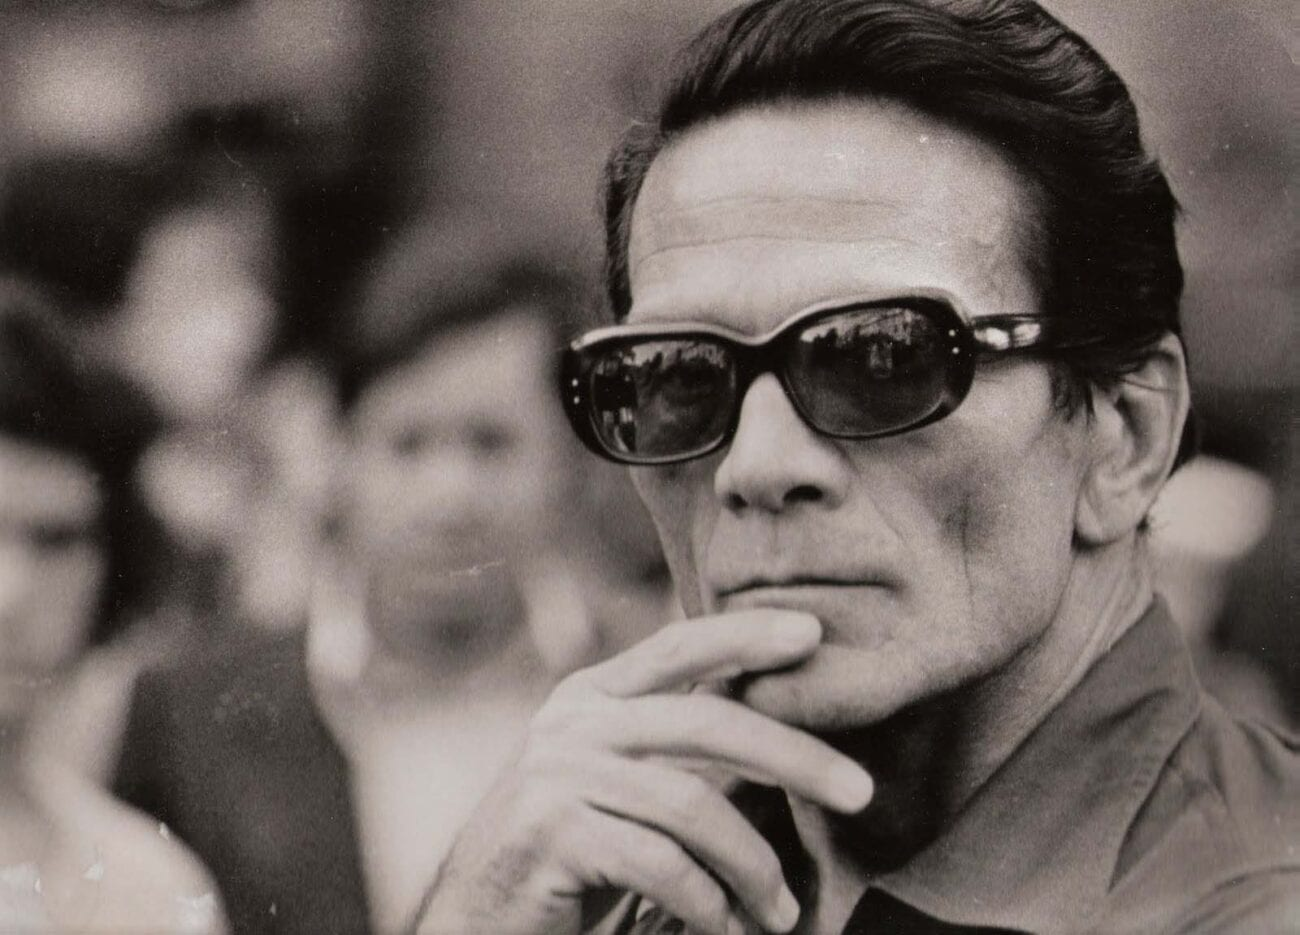 Pier Paolo Pasolini made beautiful films like 'Arabian Nights' and 'The Canterbury Tales', but his messages of anti-fascism made him a target.